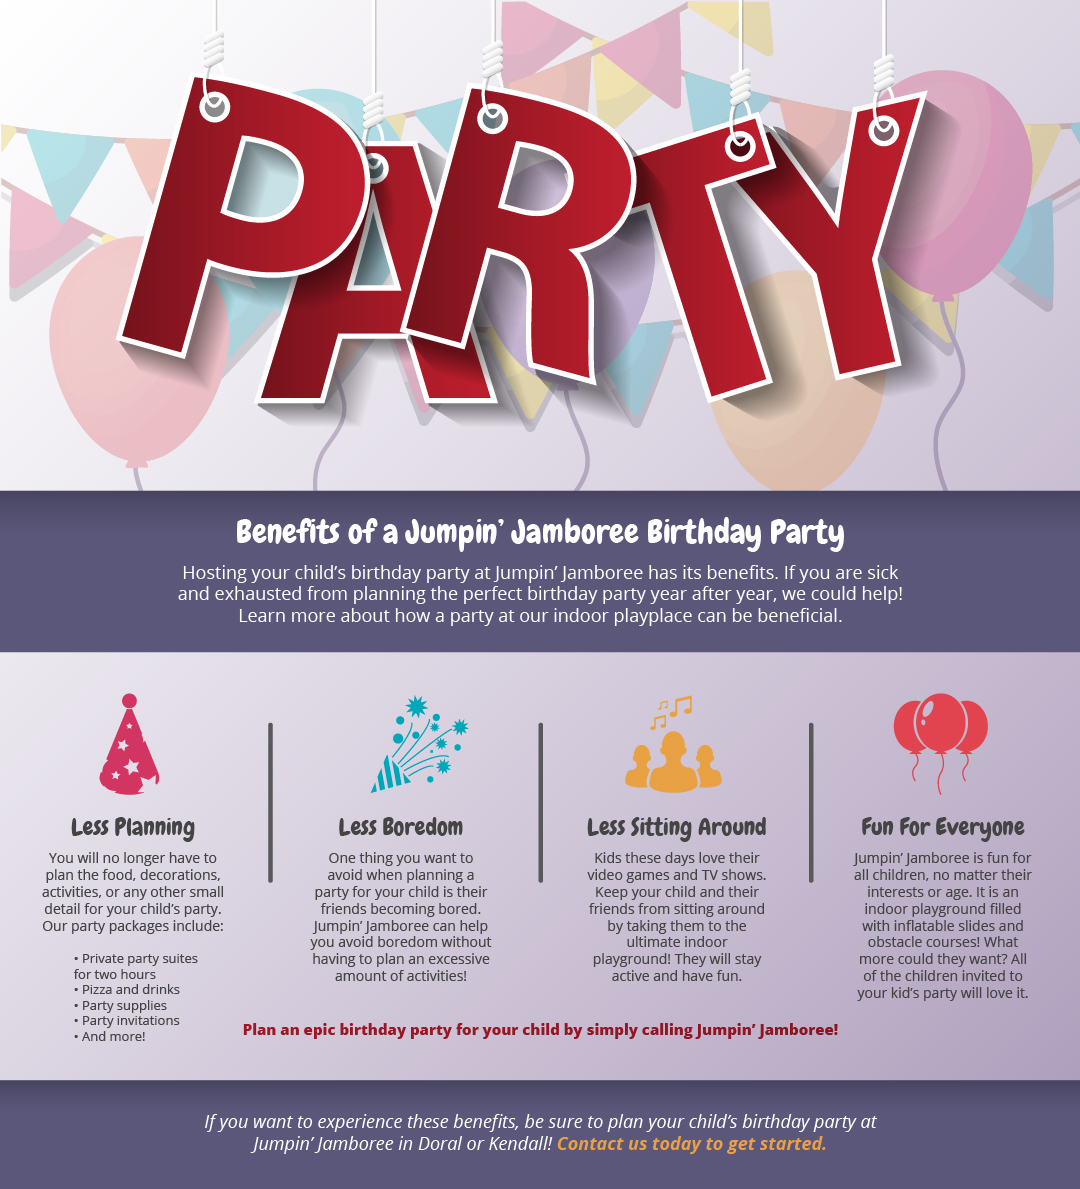 You Are All Our Kids No Matter What >> Kids Birthday Party Ideas Kendall Benefits Of A Jumpin Jamboree